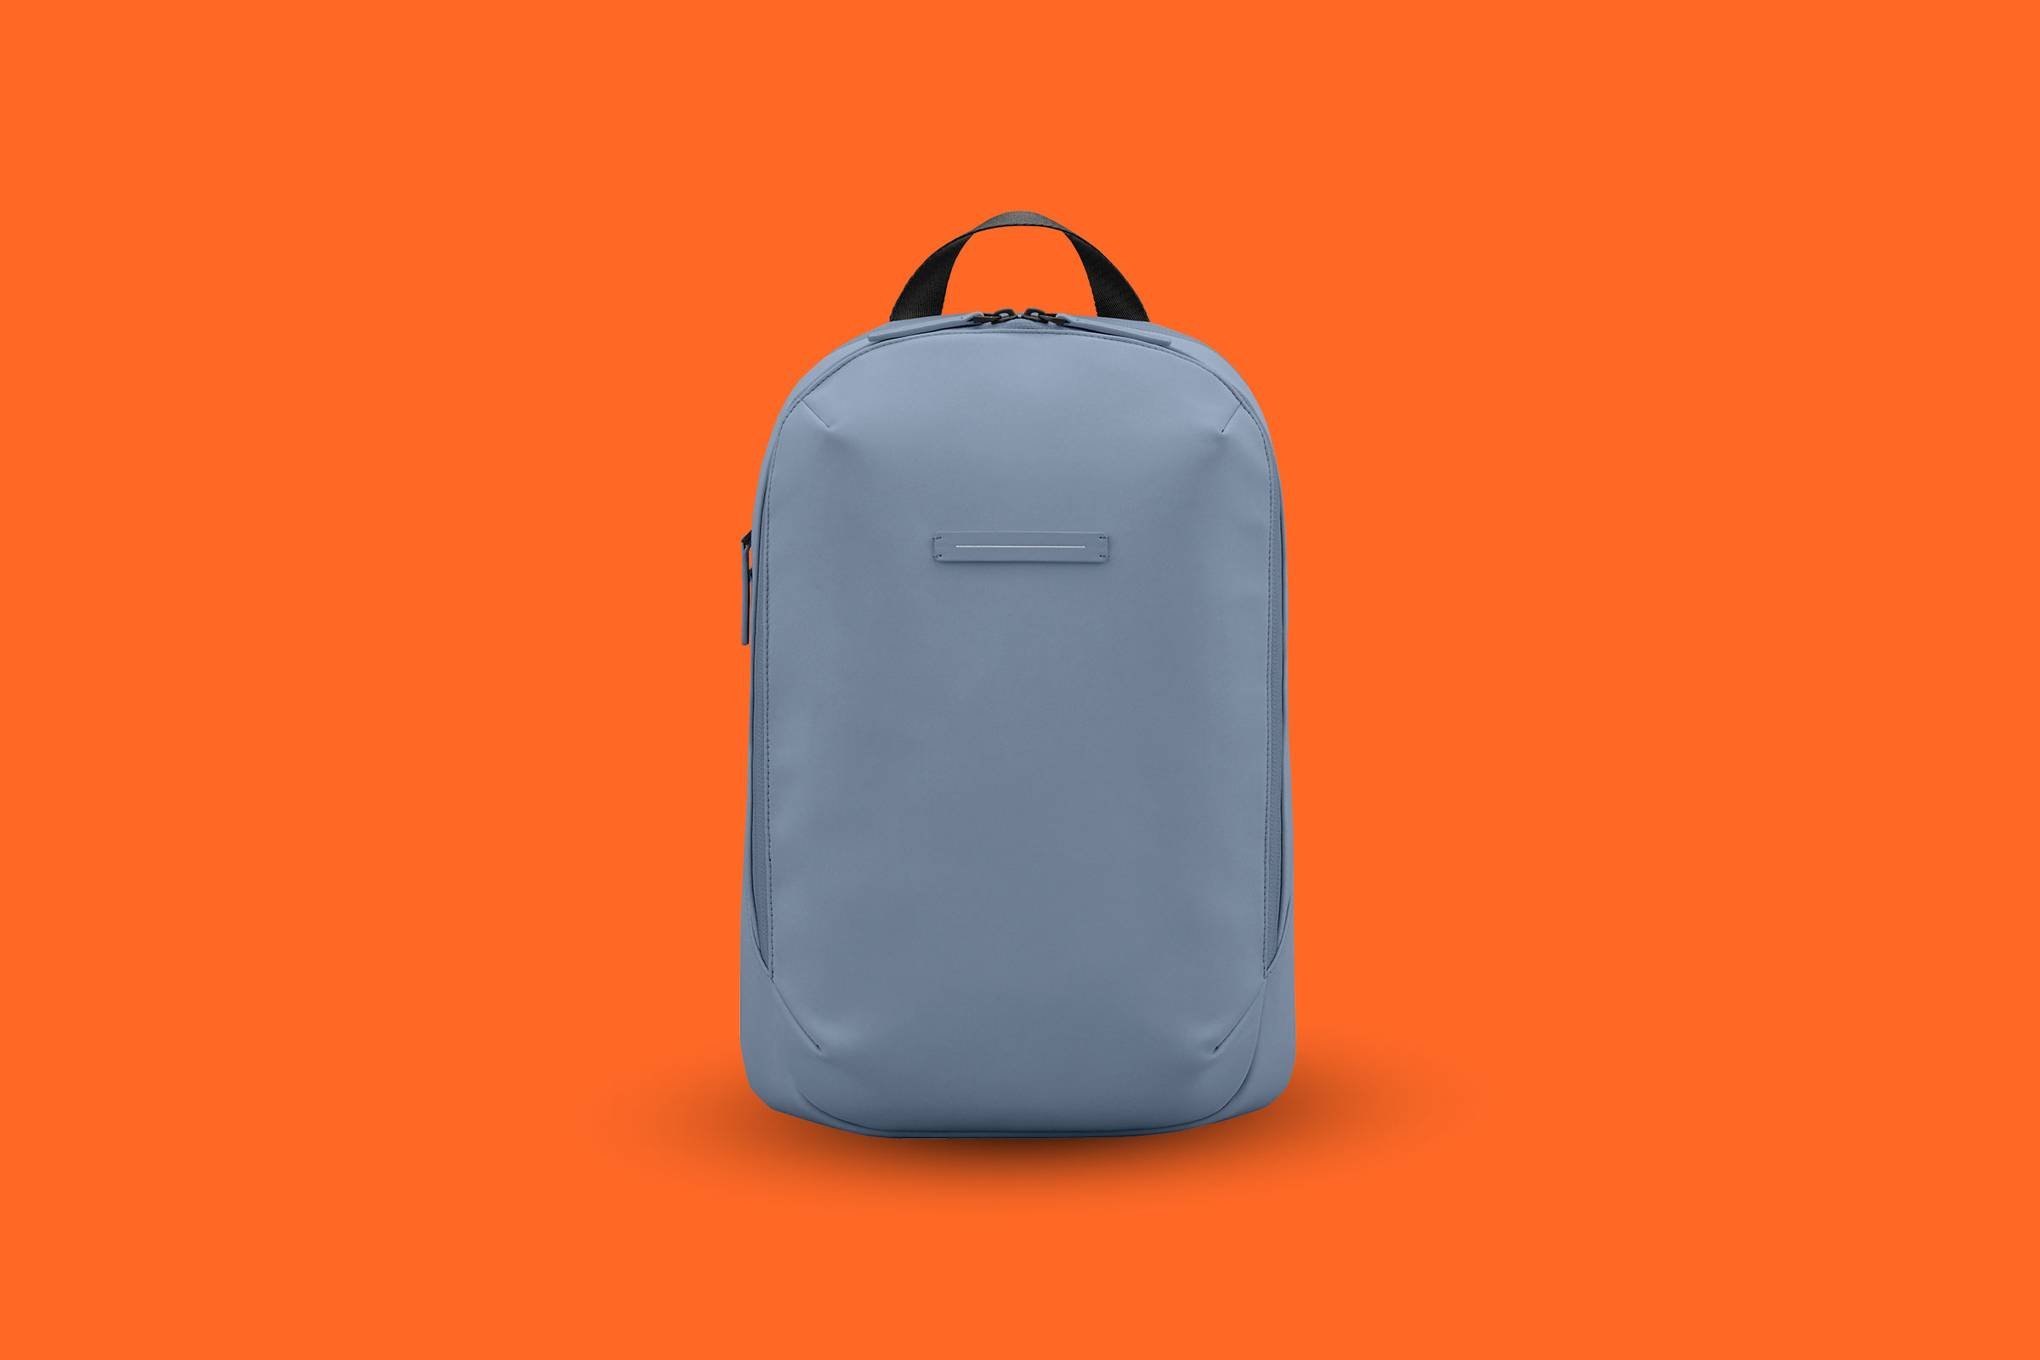 7e94e6901 Best Backpack 2019: The bestpacks for travel and work | WIRED UK